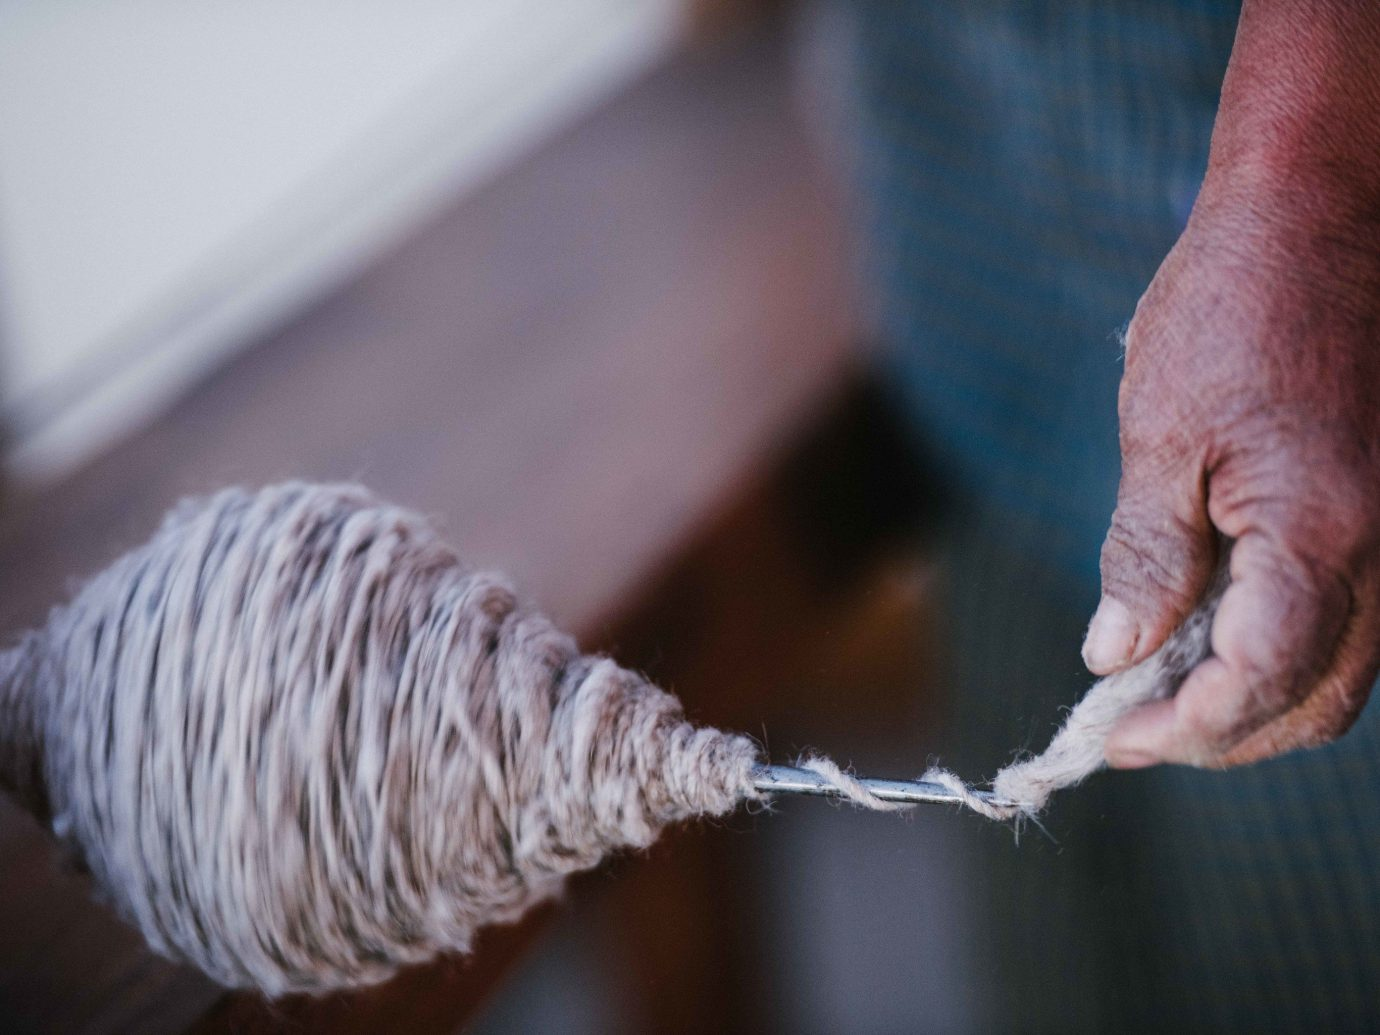 Arts + Culture Mexico Oaxaca Trip Ideas person indoor rope thread hand wool finger close feet